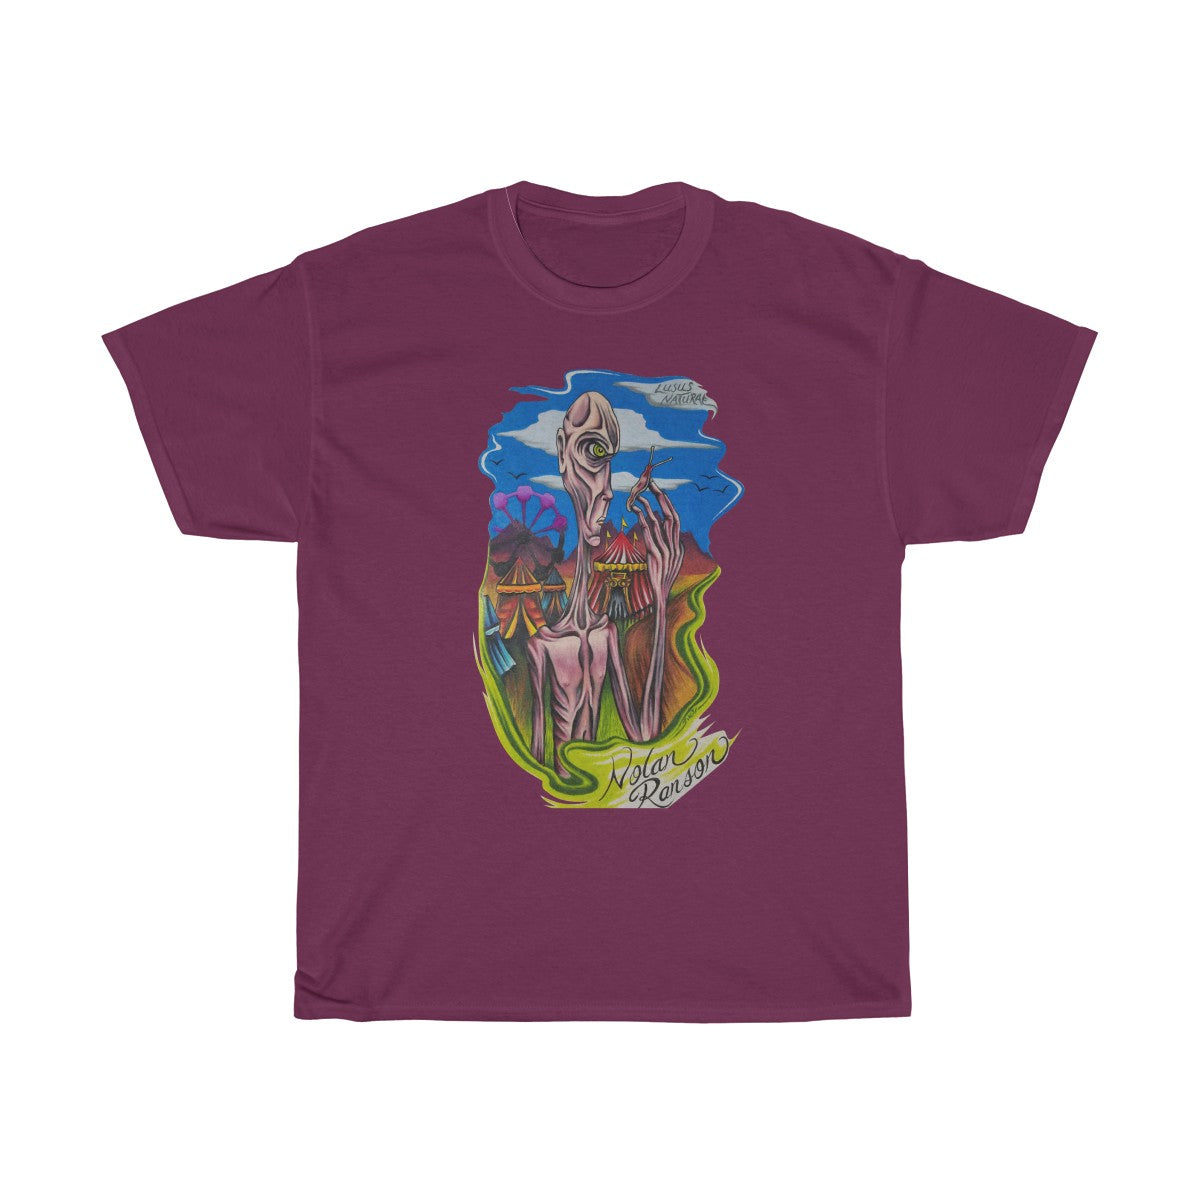 Lusus Naturae - Unisex Heavy Cotton Tee  - Nolan